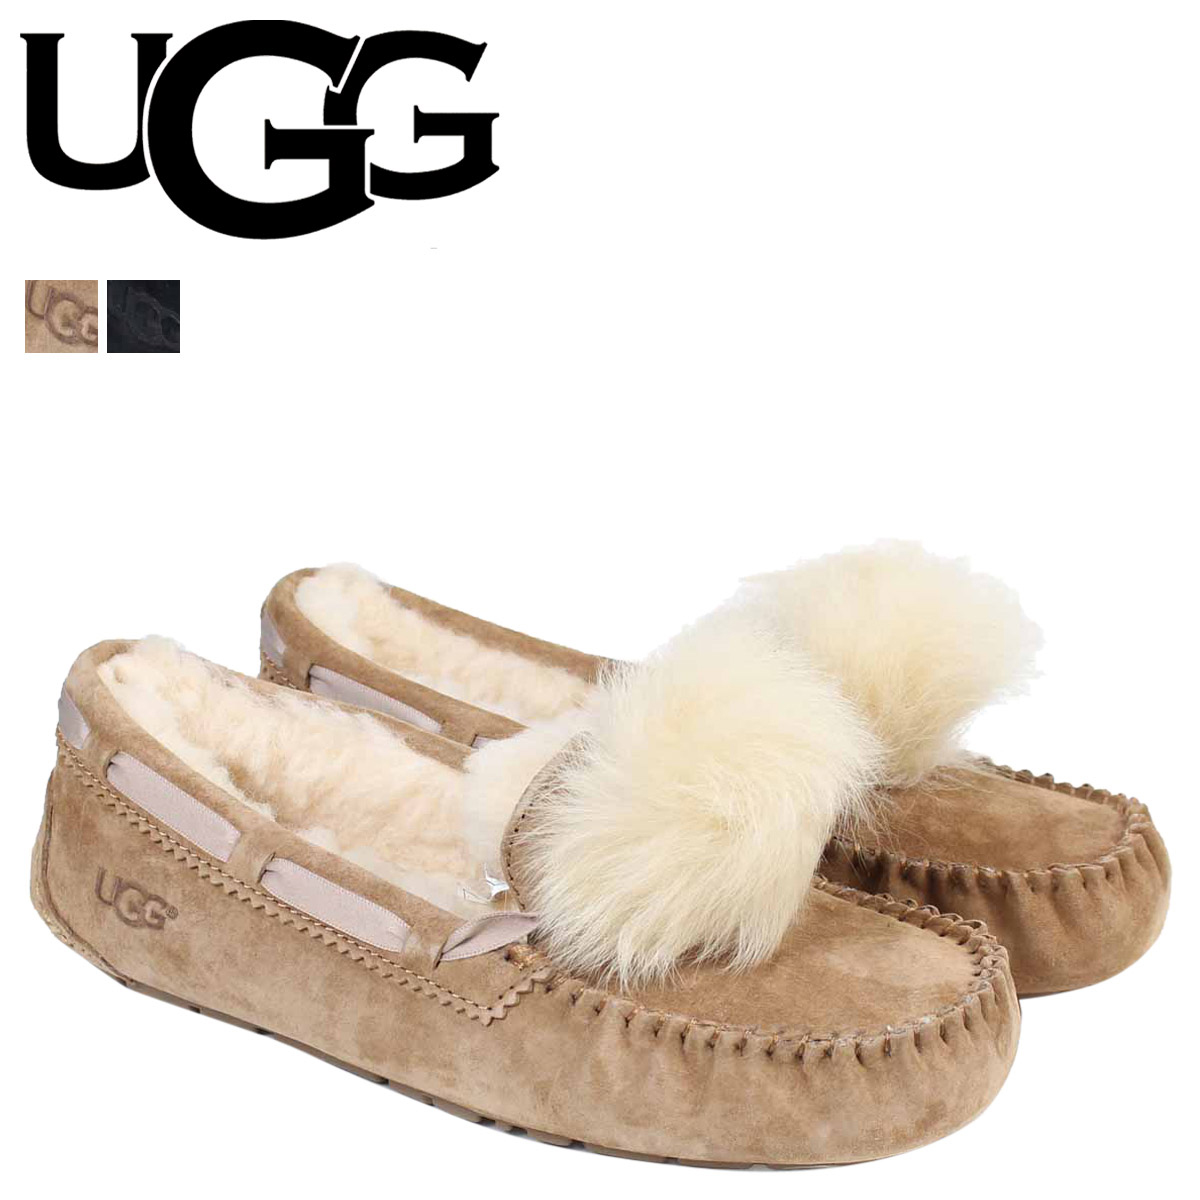 f49111d999a UGG アグモカシンダコタレディースムートンシューズ WOMENS DAKOTA POM POM 1019015 sheepskin suede  [11/15 Shinnyu load]